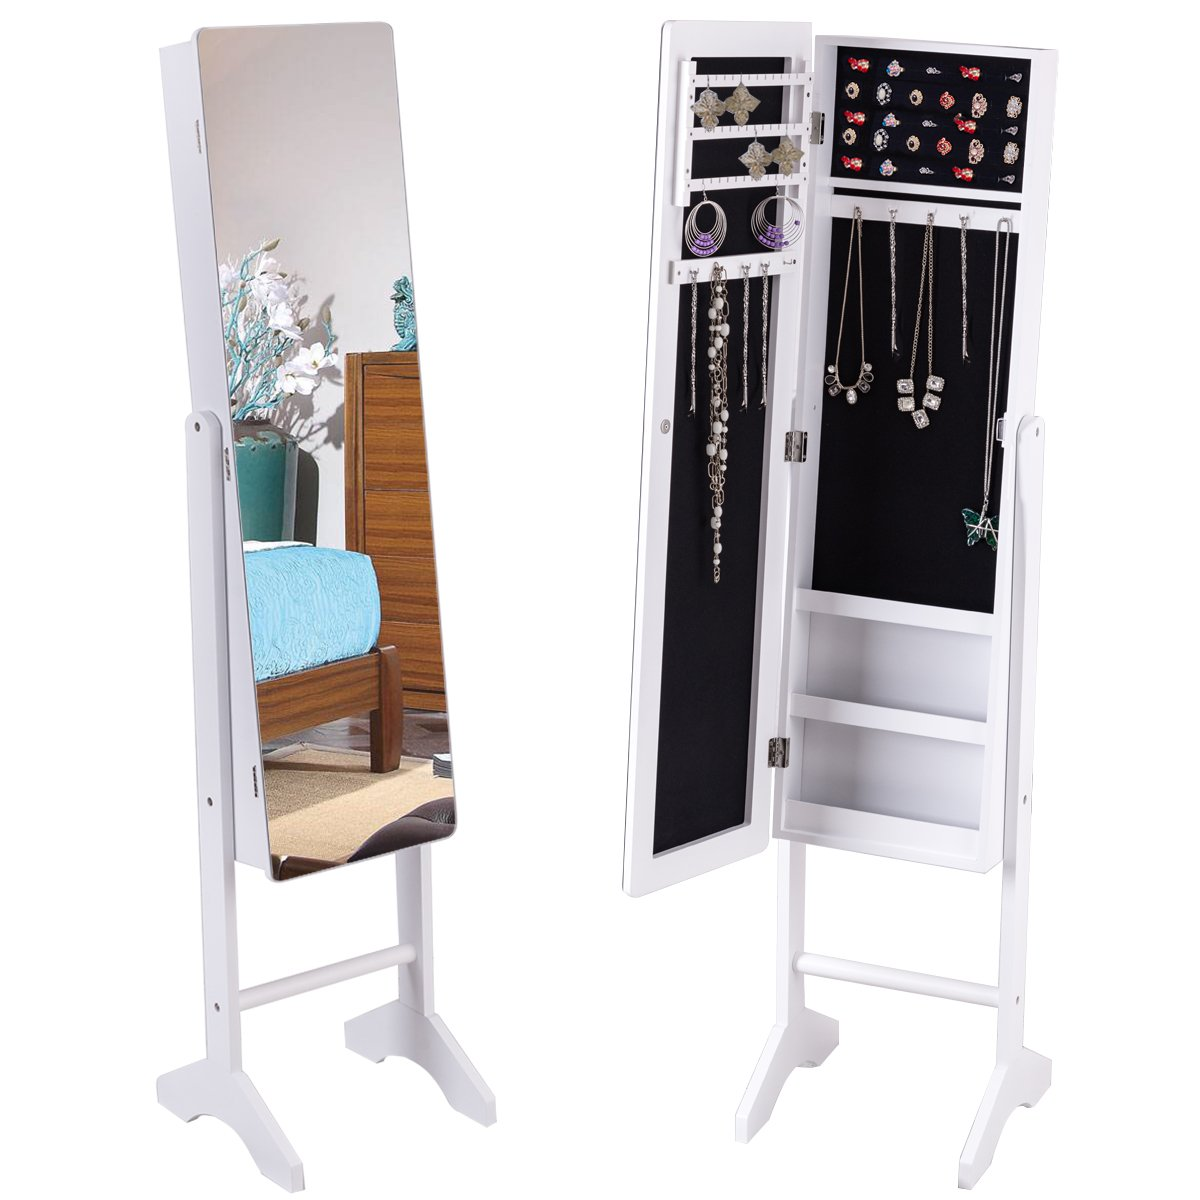 Giantex Free Standing Mirrored Jewelry Cabinet Armoire Lockable Storage Organizer Mirror Rings with Light White HW56228